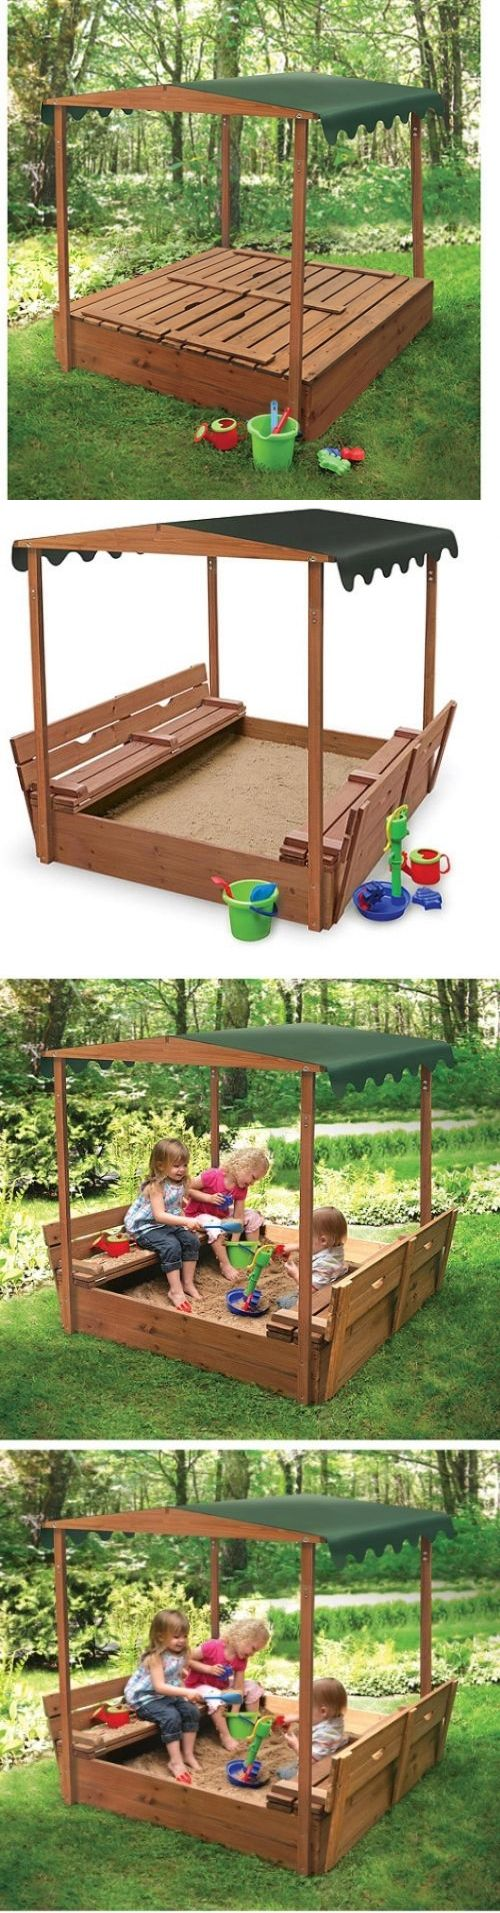 sandbox toys and sandboxes 145990 new outdoor kids covered